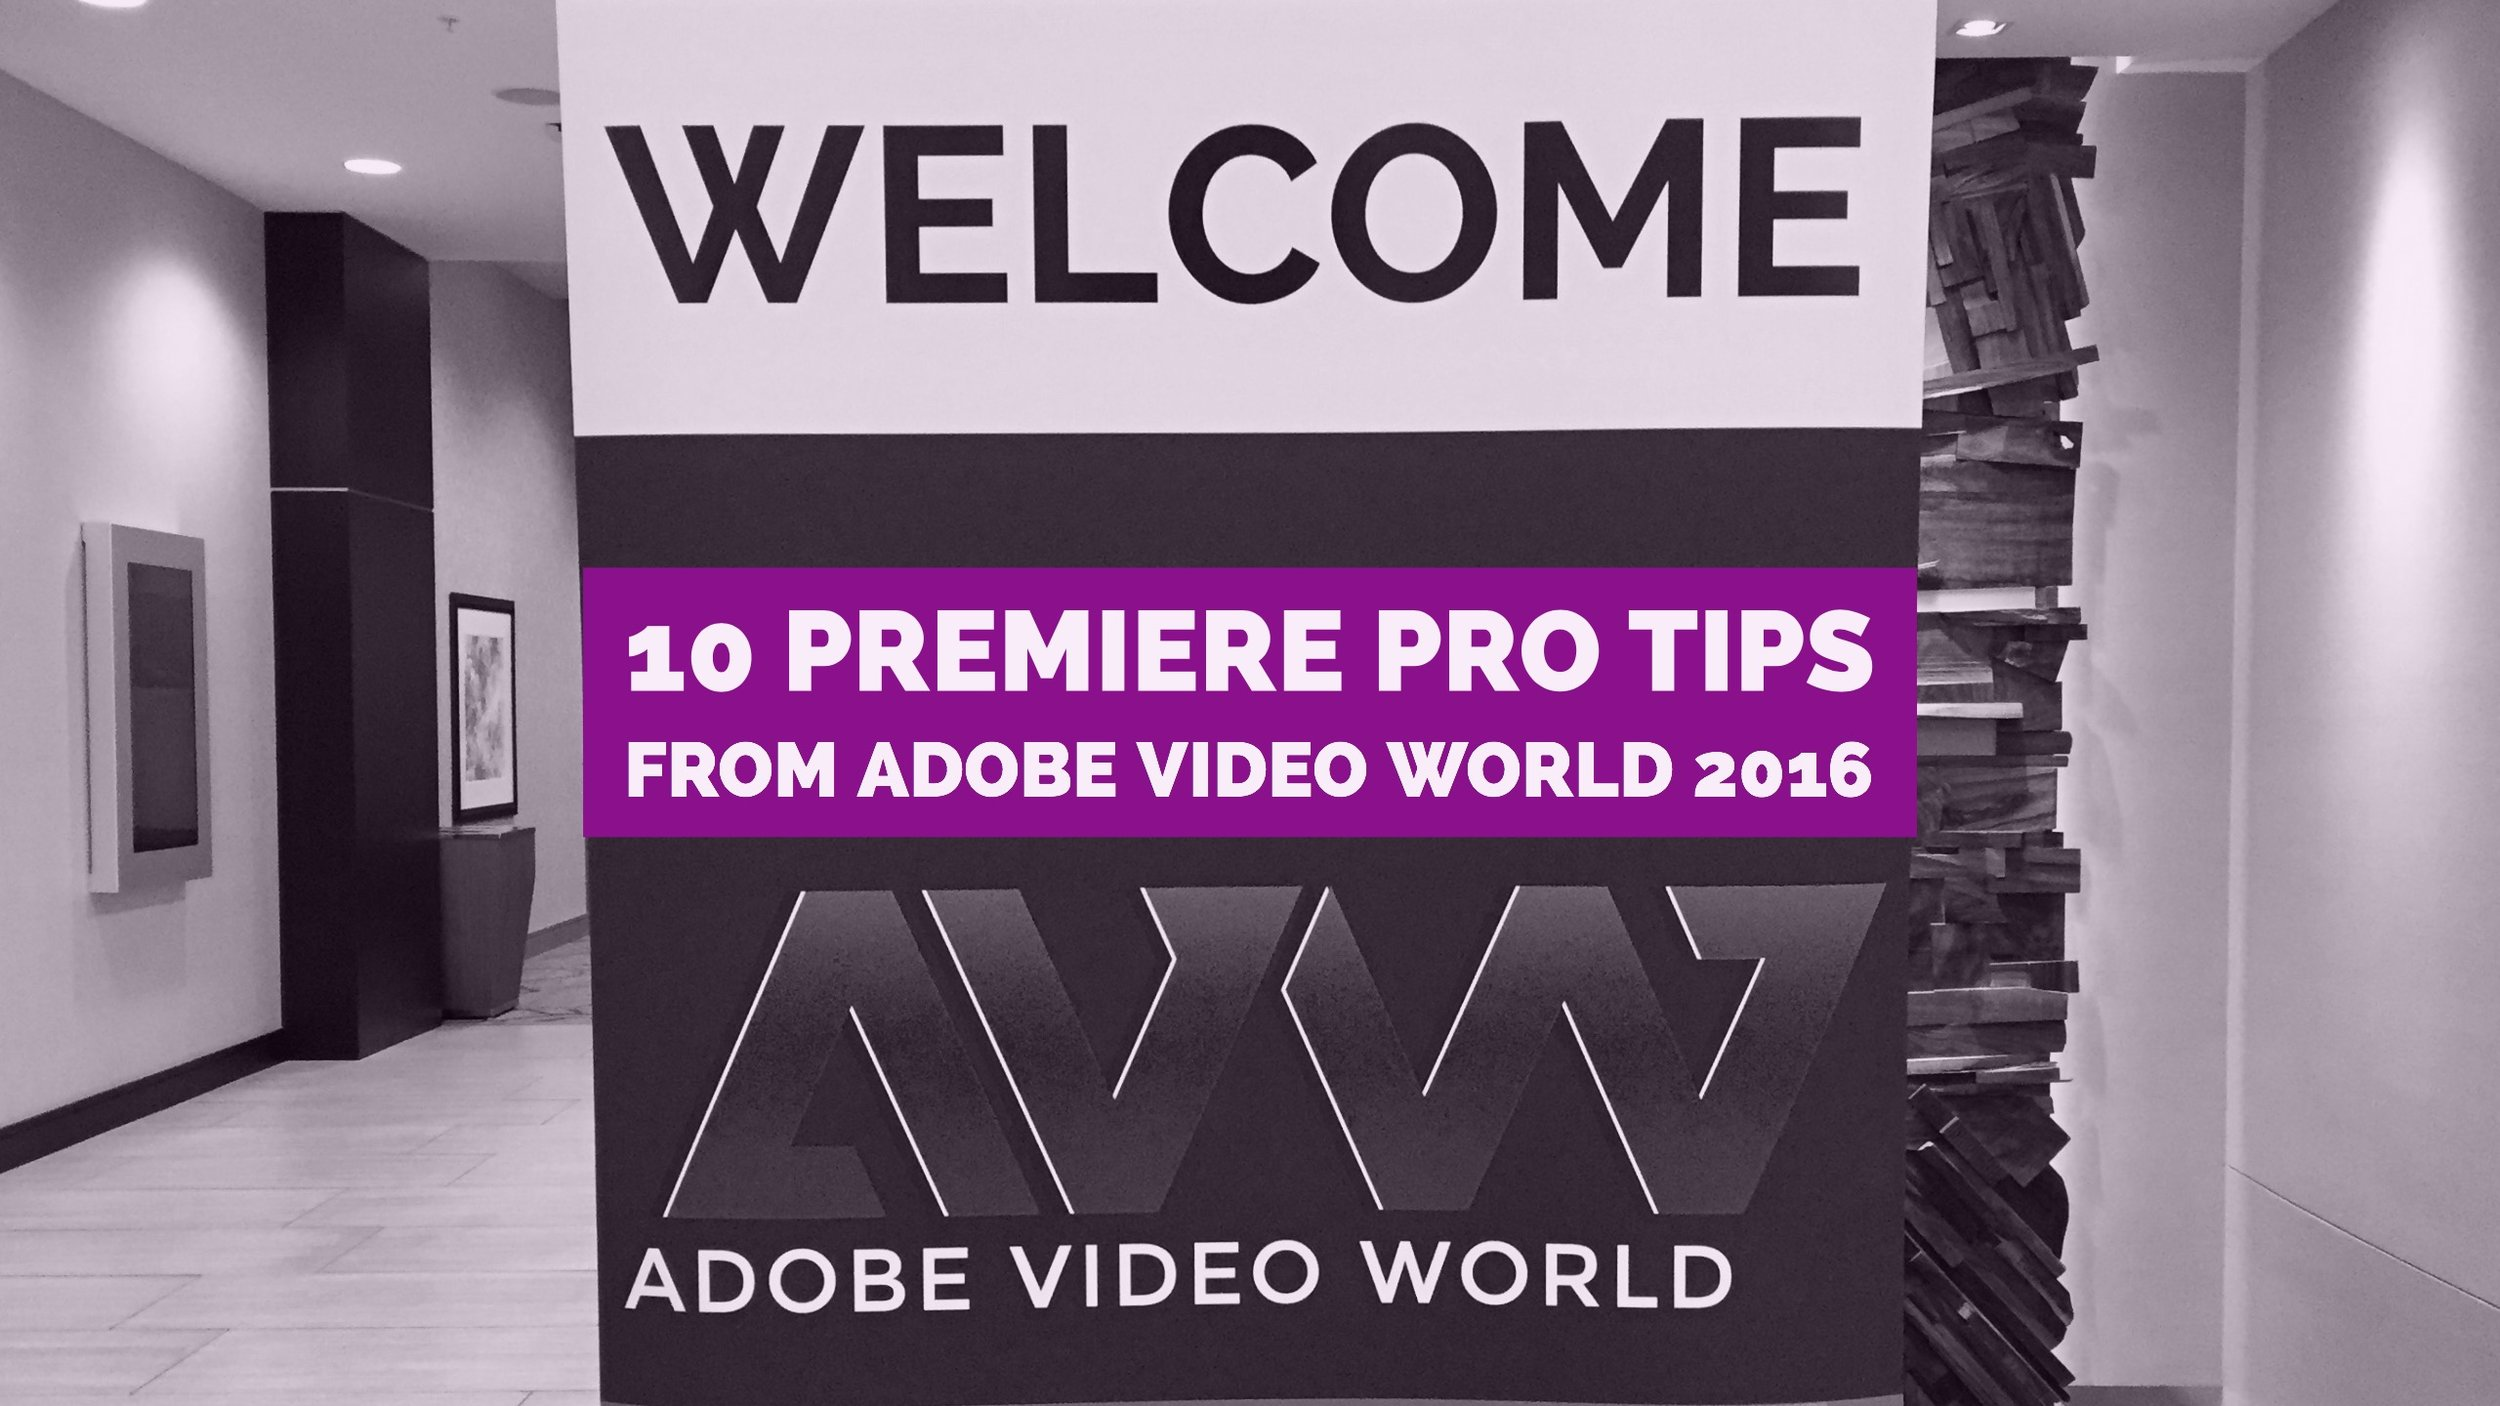 10-premiere-pro-tips-from-adobe-video-world-2016